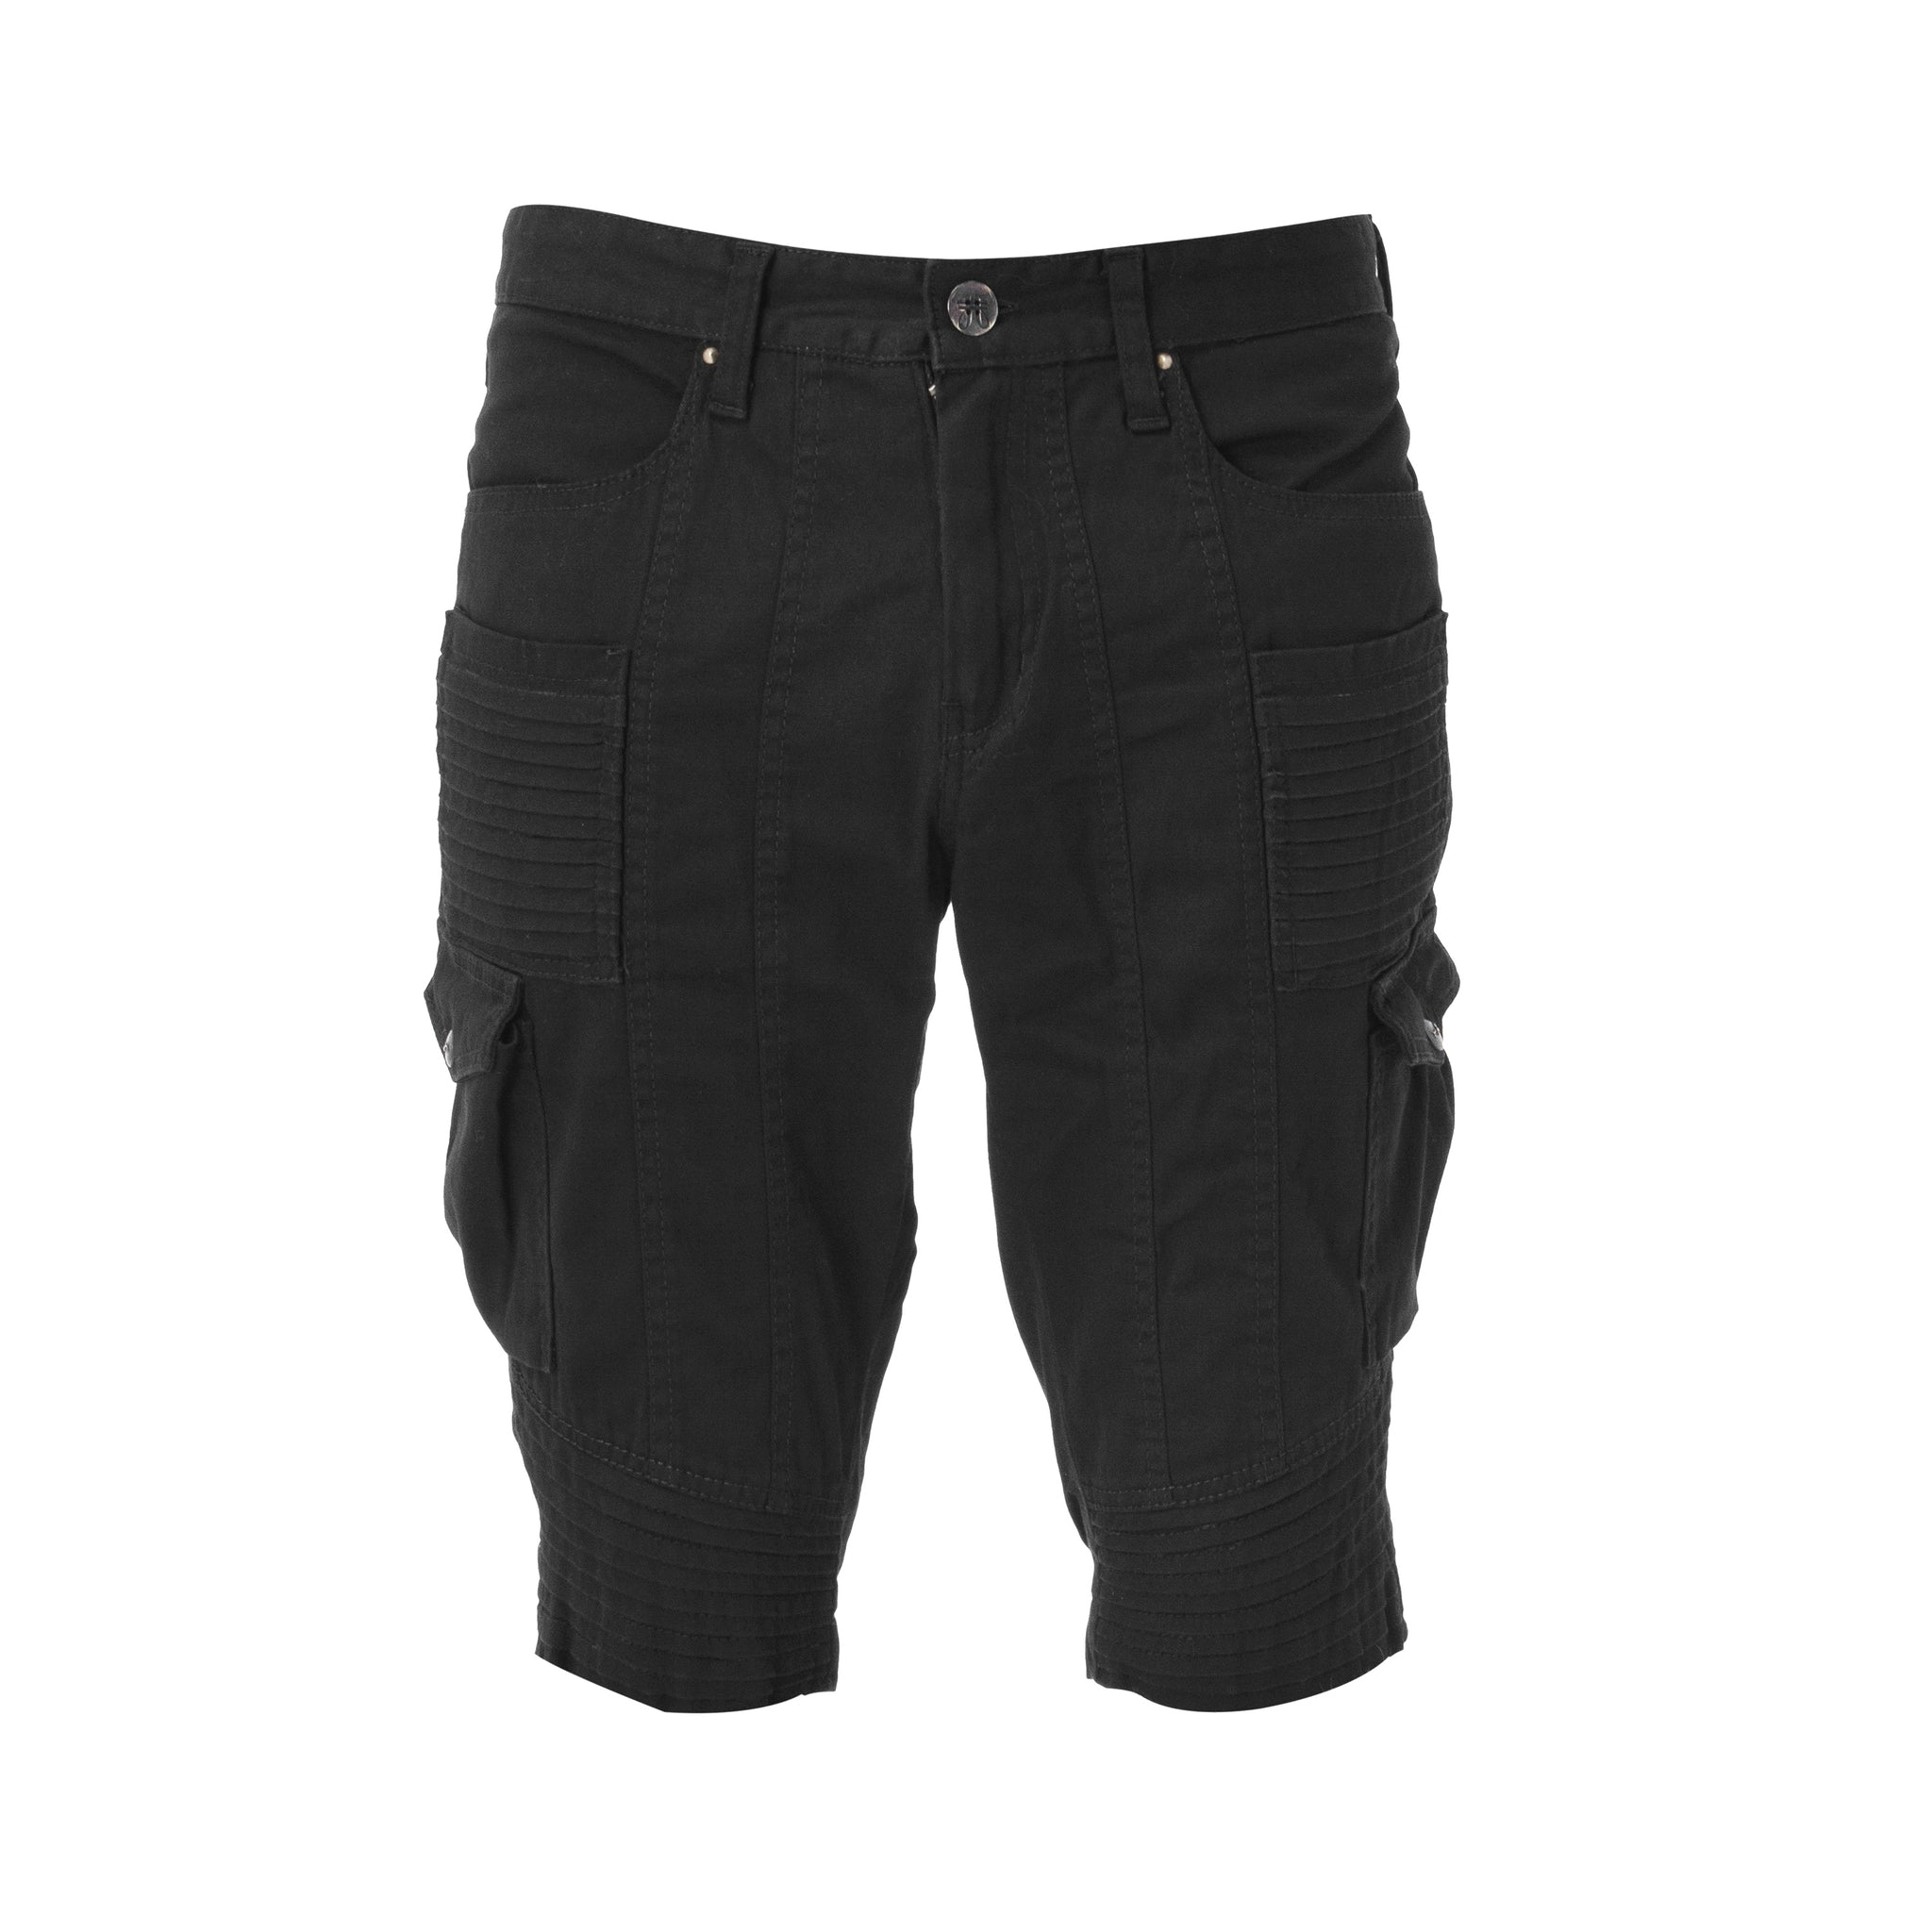 Outer Orbit shorts